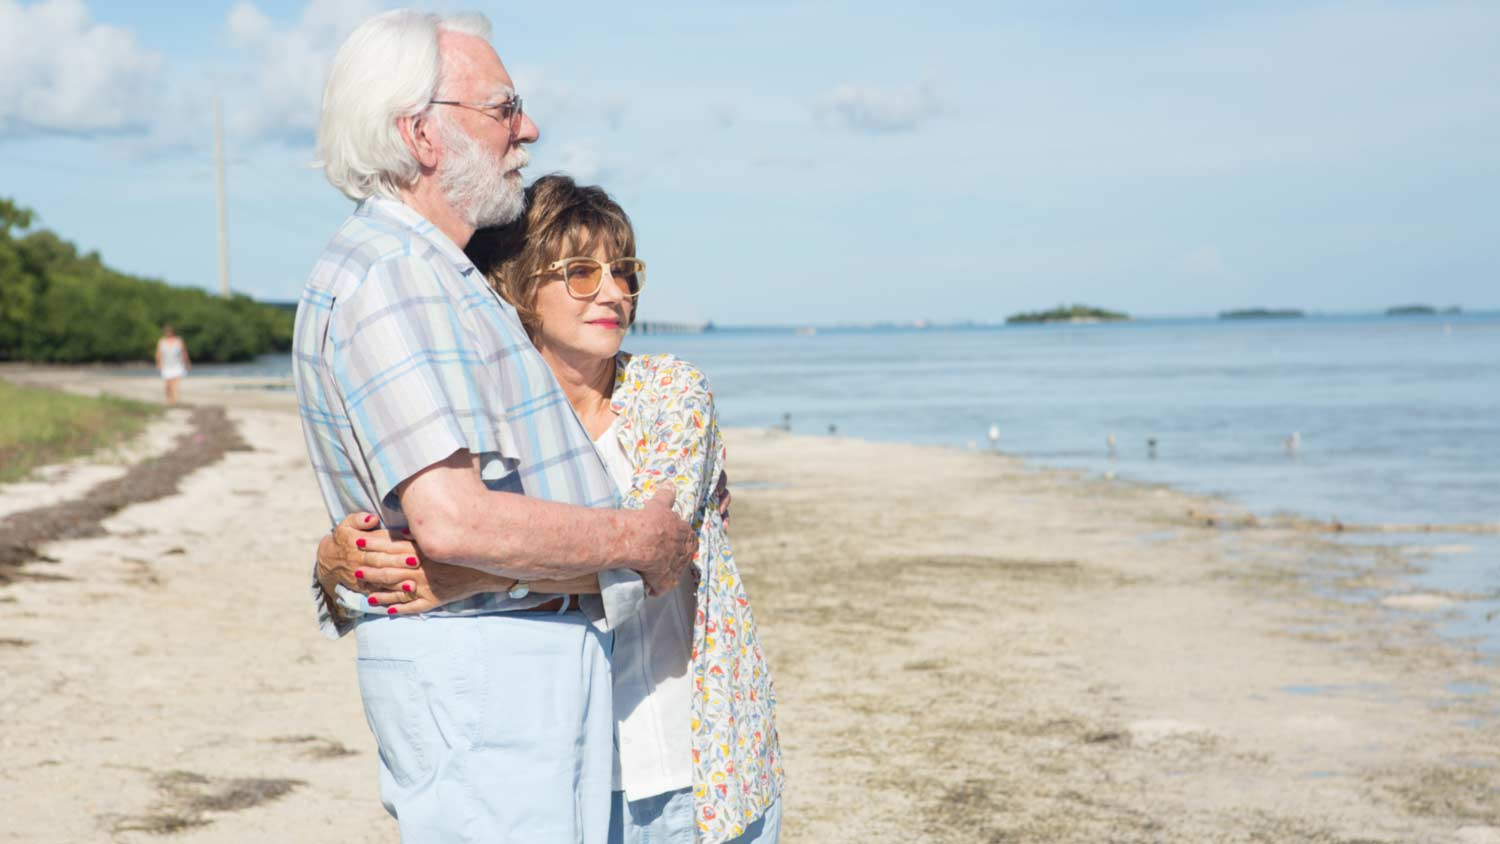 The Leisure Seeker Trailer – Sutherland, Mirren And An Old RV - OC Movie Reviews - Movie Reviews, Movie News, Documentary Reviews, Short Films, Short Film Reviews, Trailers, Movie Trailers, Interviews, film reviews, film news, hollywood, indie films, documentaries